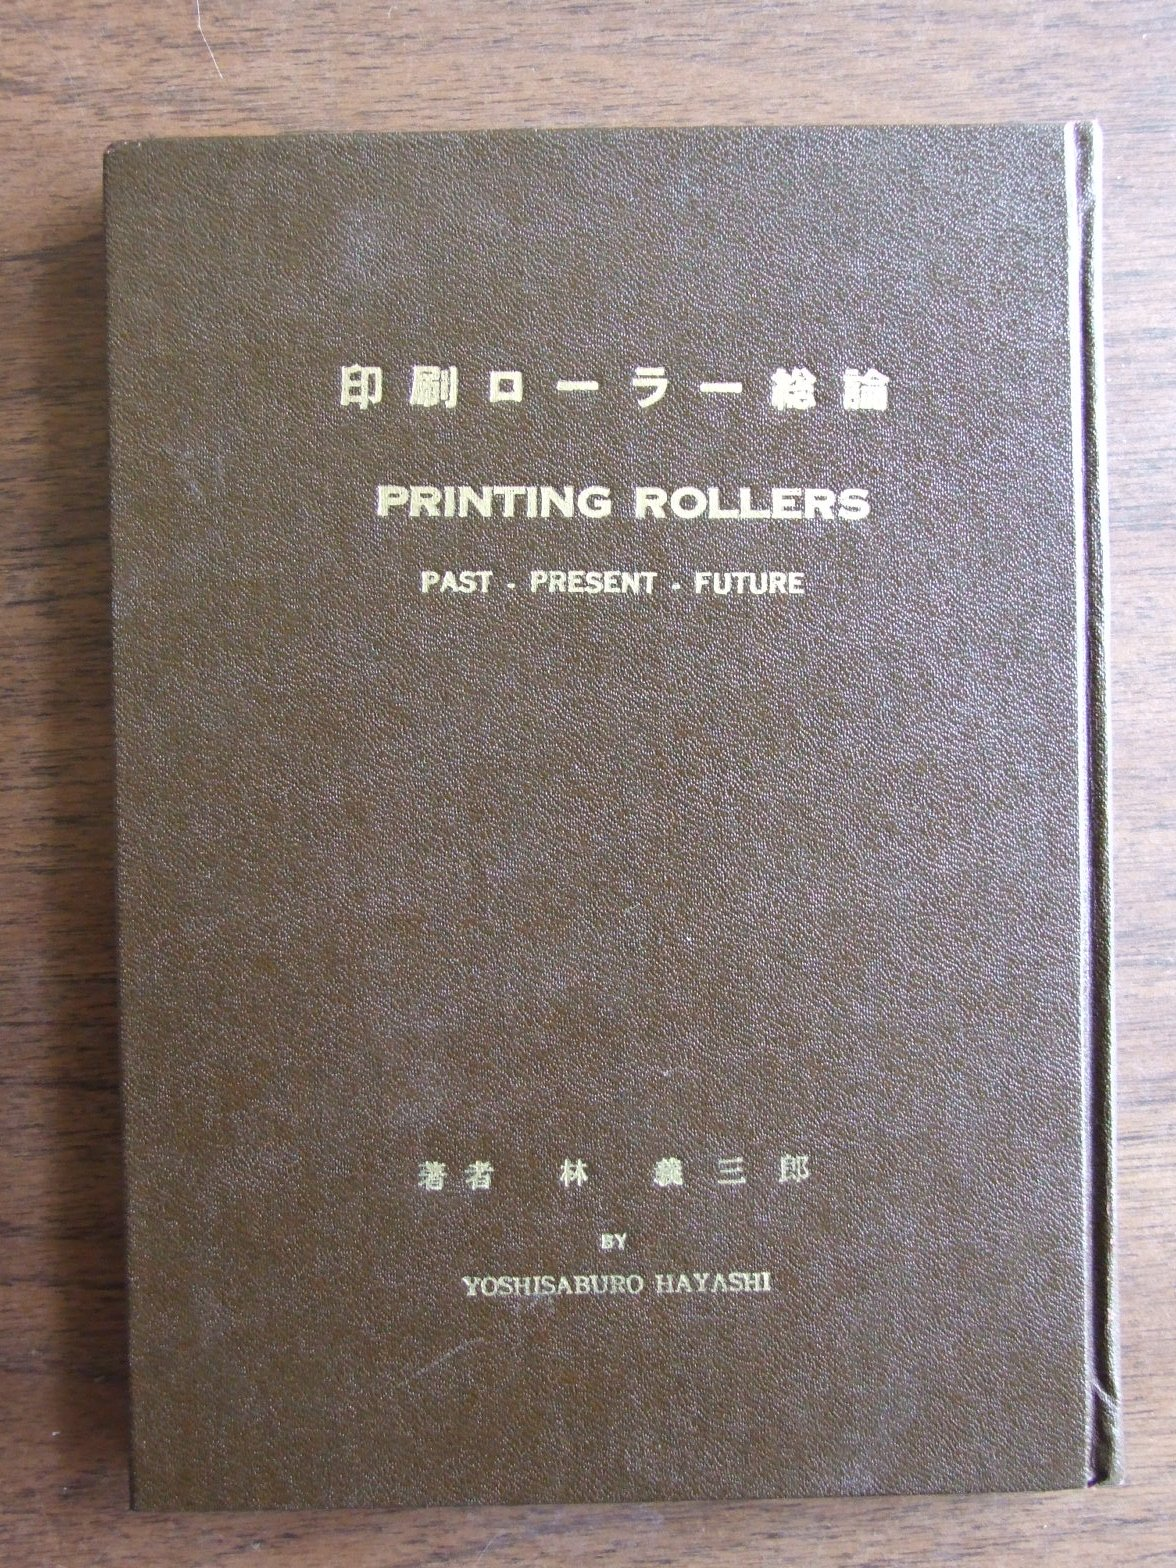 Printing Rollers Past, Present, Future